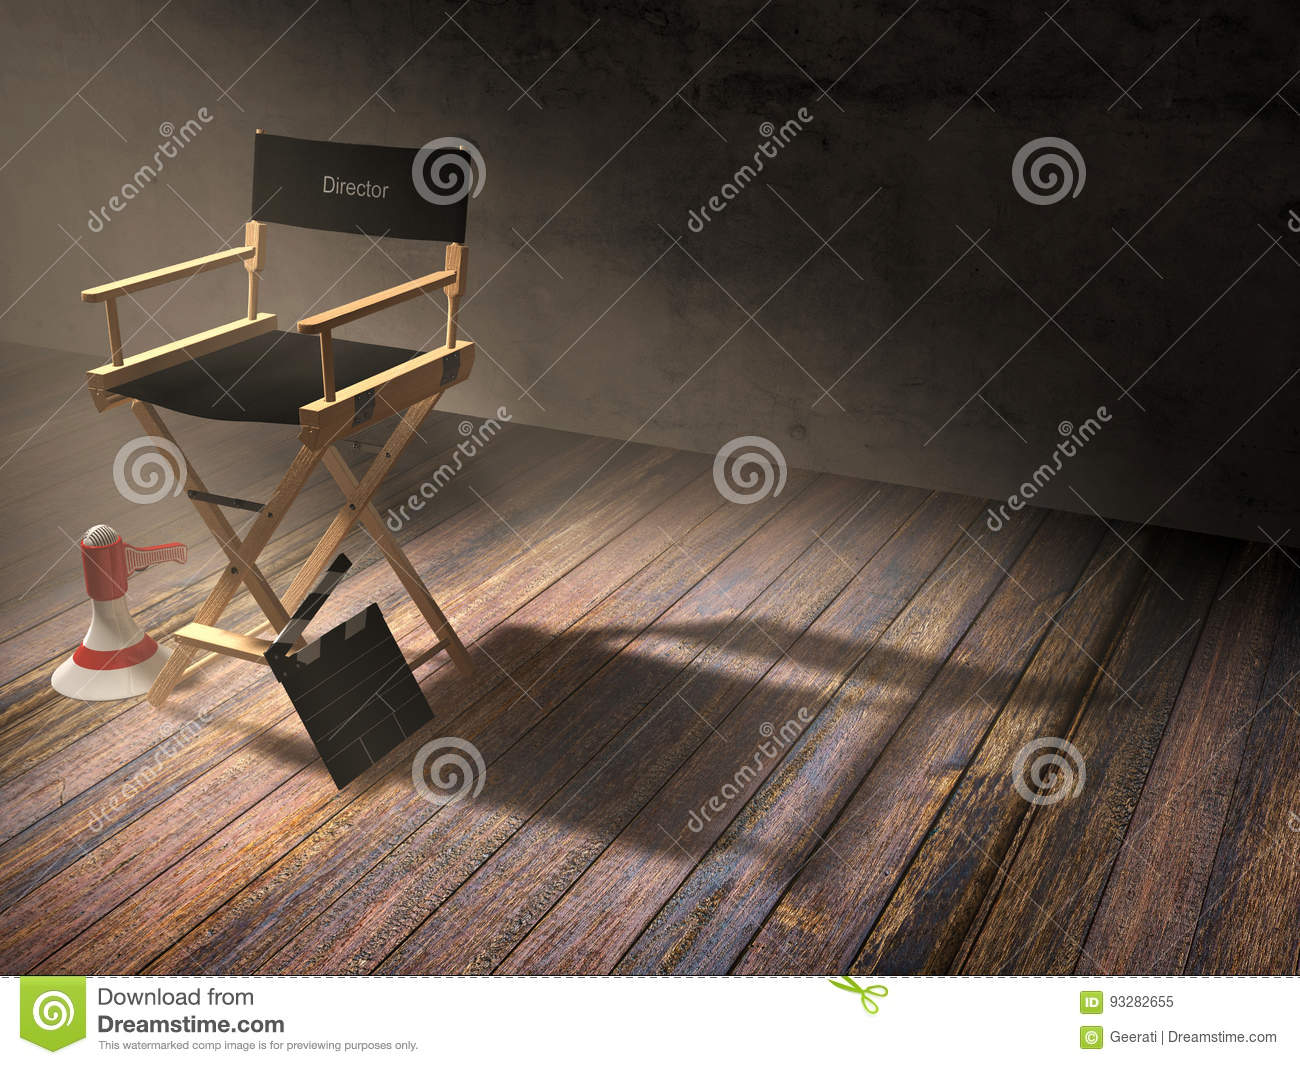 Director`s chair with clapper board and megaphone in dark room scene with spotlight light